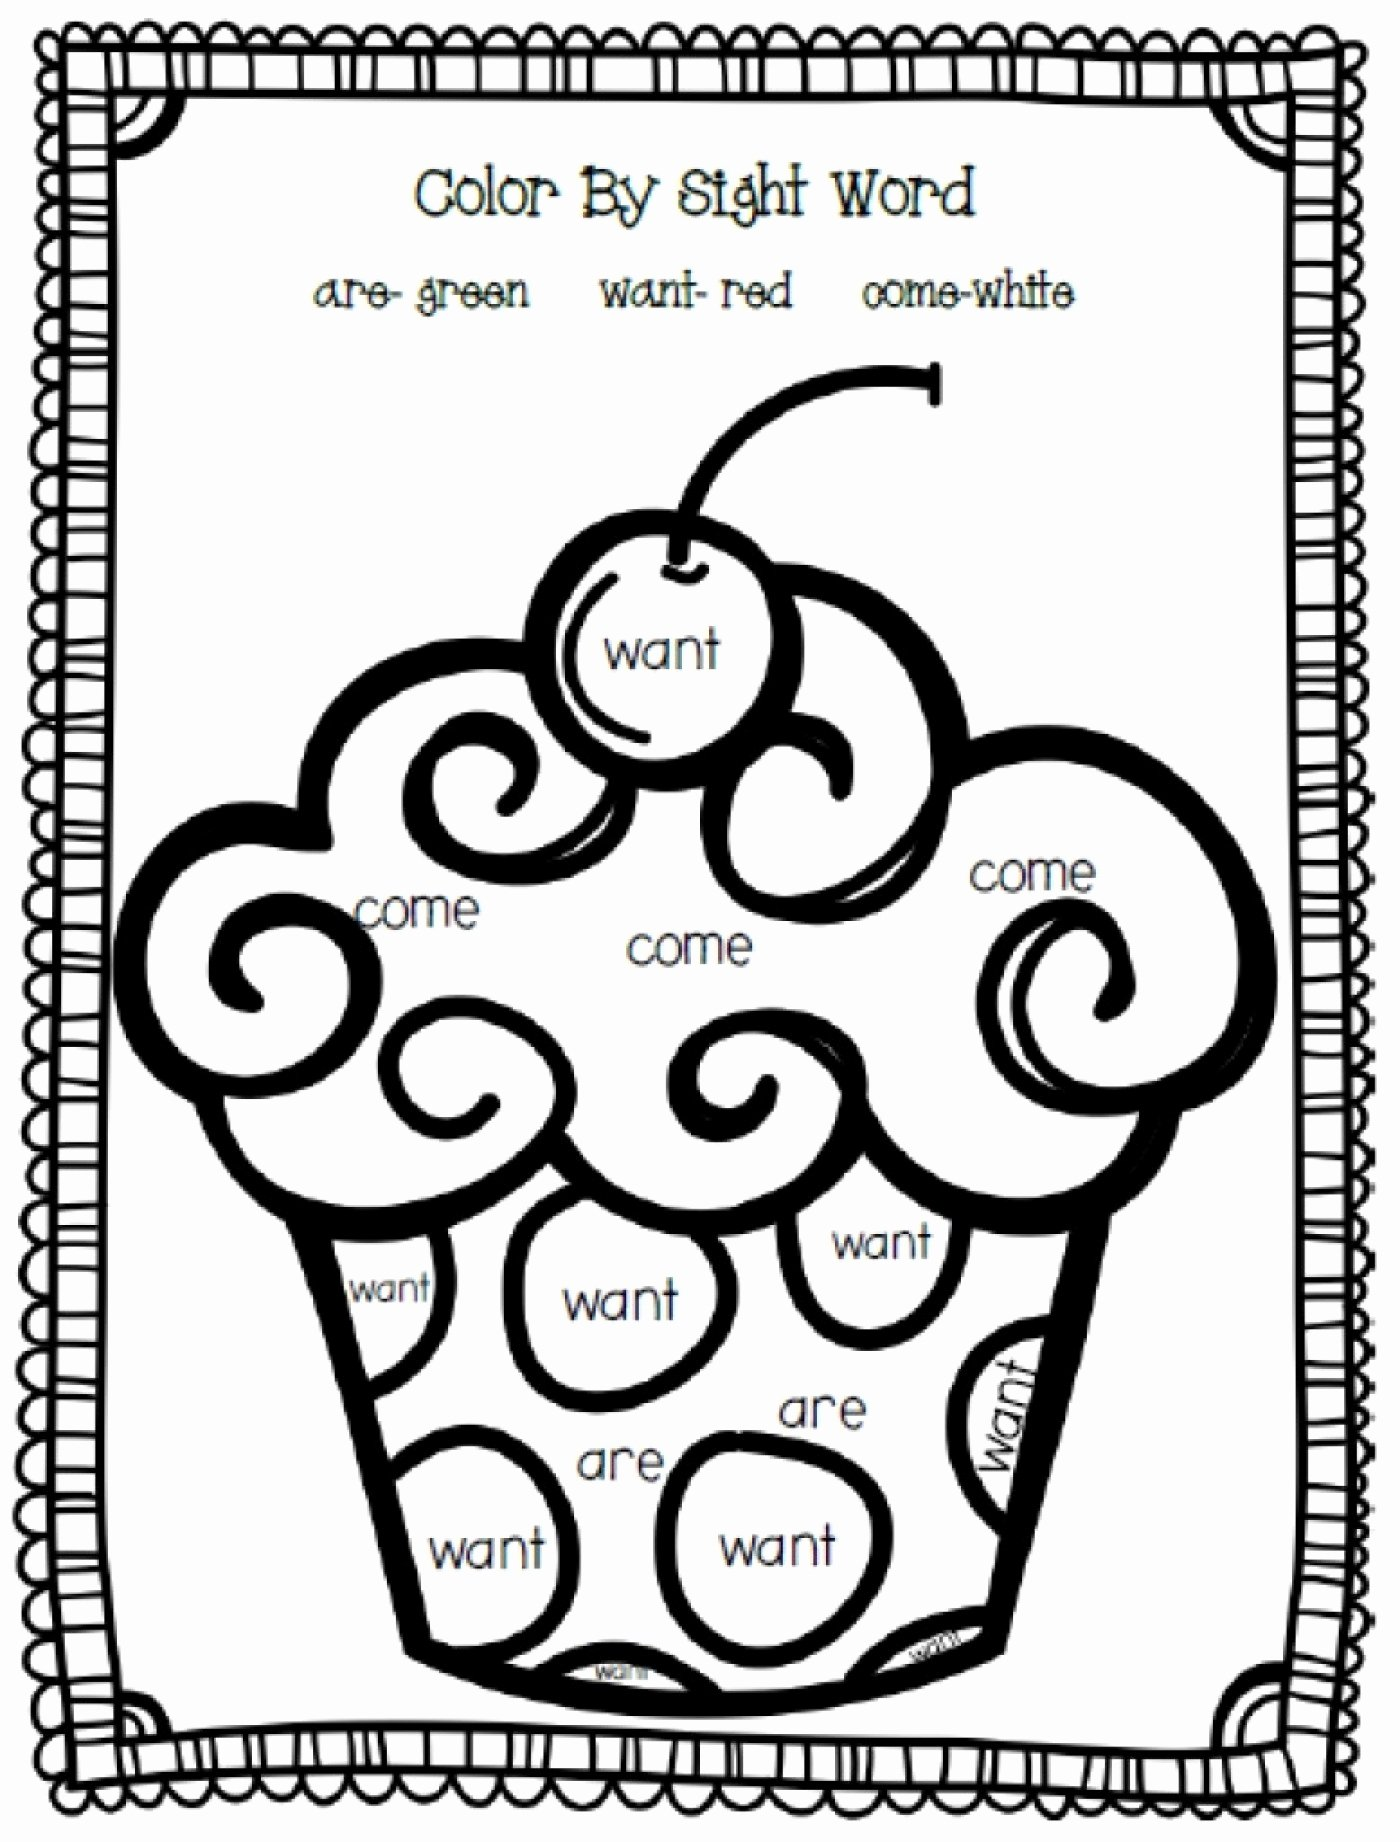 Kindergarten Sight Word Coloring Worksheets Kids Tremendous Free Sight Word Coloring Pages Worksheet High